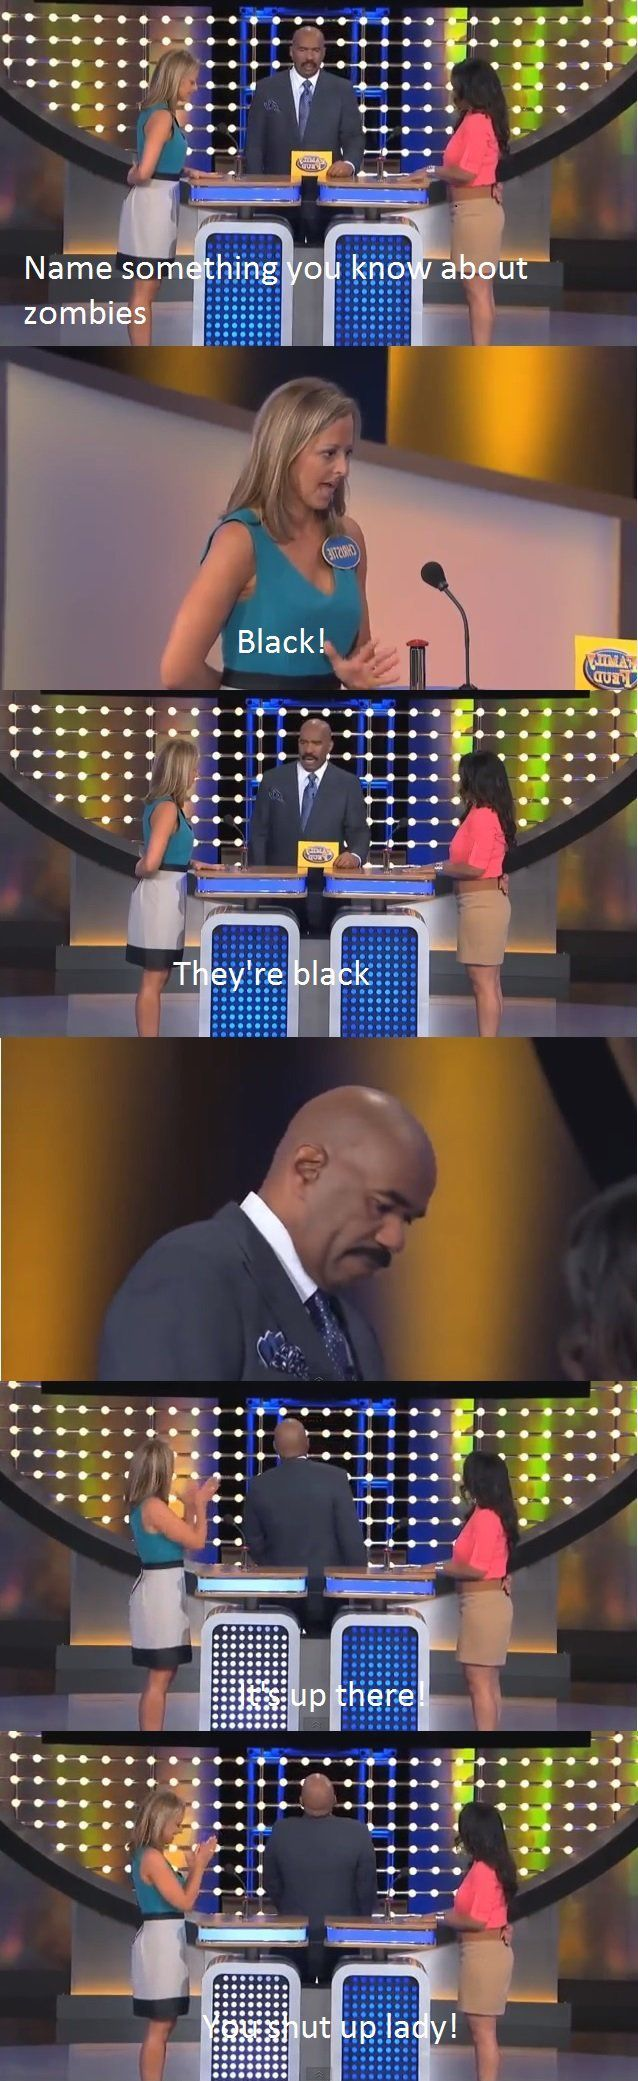 Family Feud on zombies - Funny Stuff This is too hilarious. Wow! Smh.